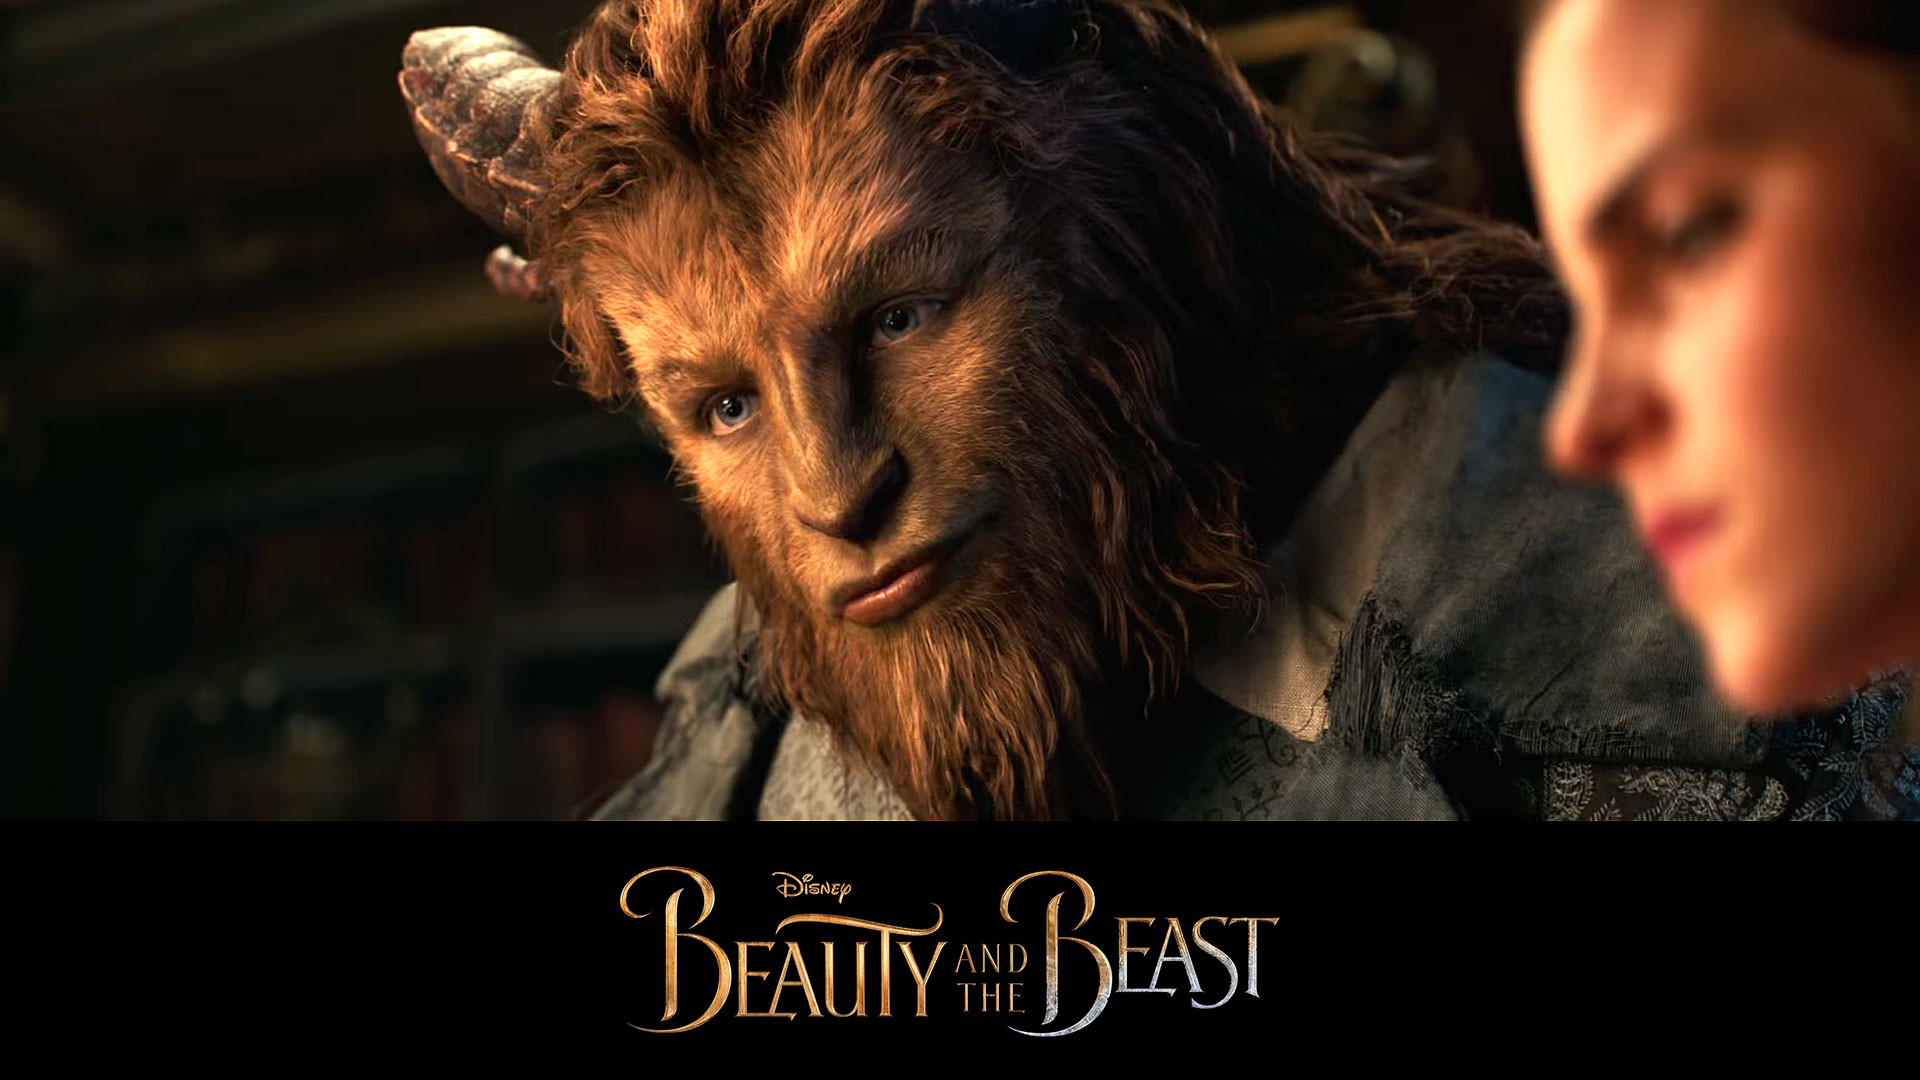 Jessowey And Andy10b Images Beauty And The Beast 2017 - Beauty And The Beast Quotes 2017 - HD Wallpaper